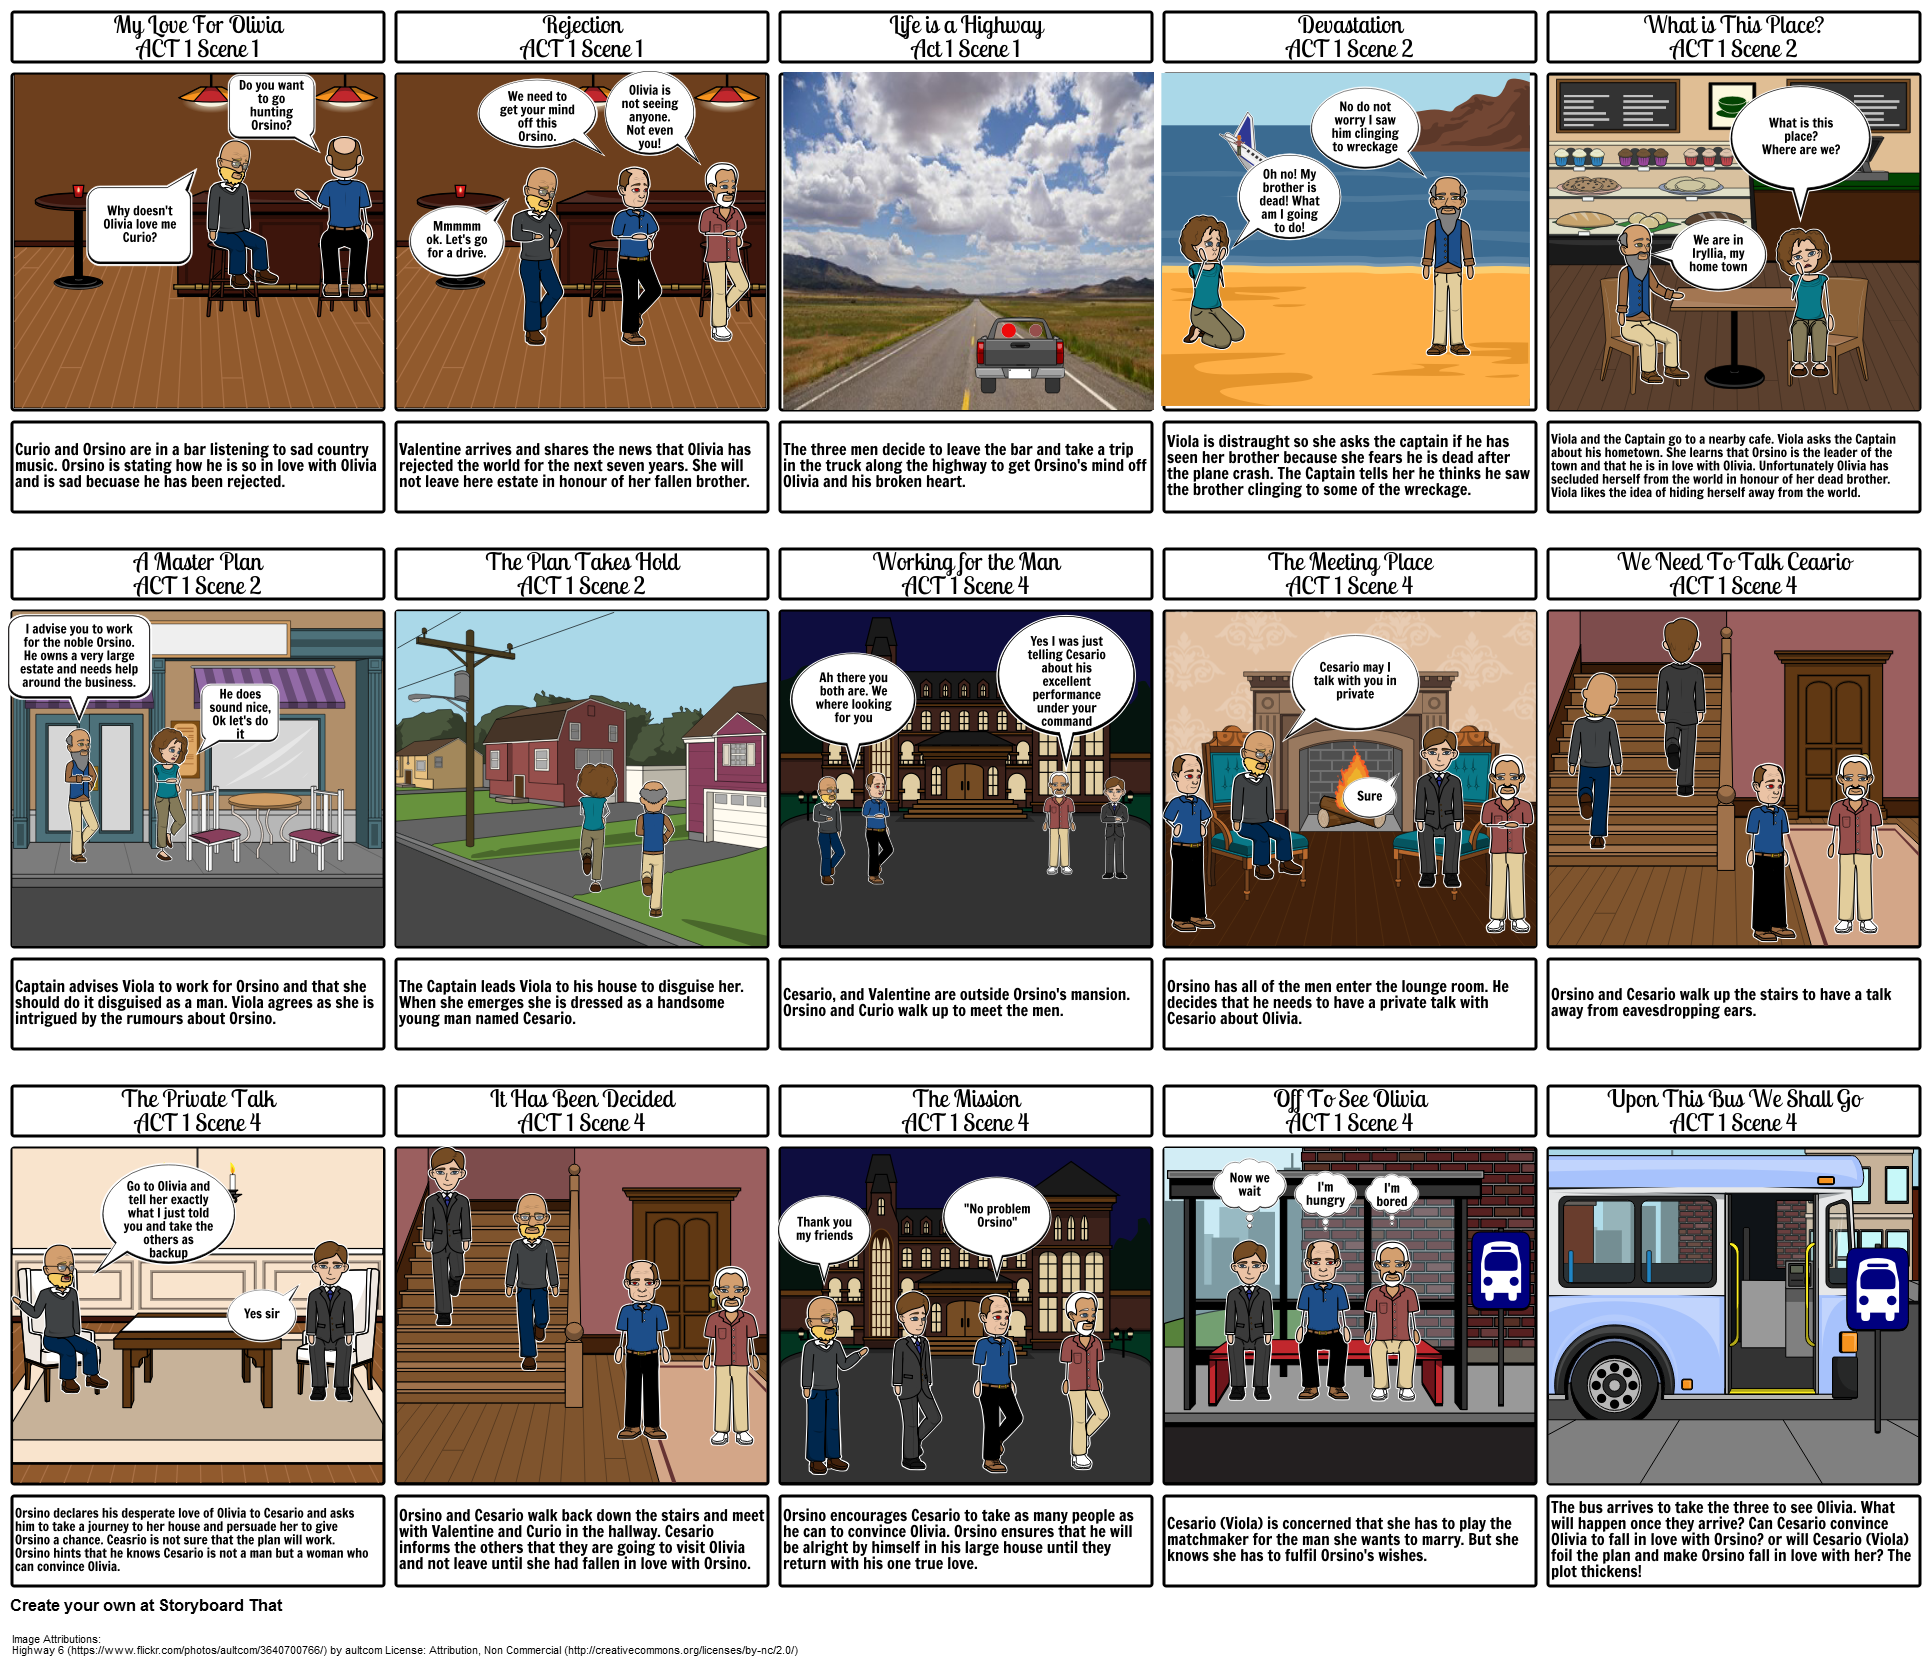 Shakespeare: A Modern Take on The Twelfth Night. By: Billy Jeffcoat 8J